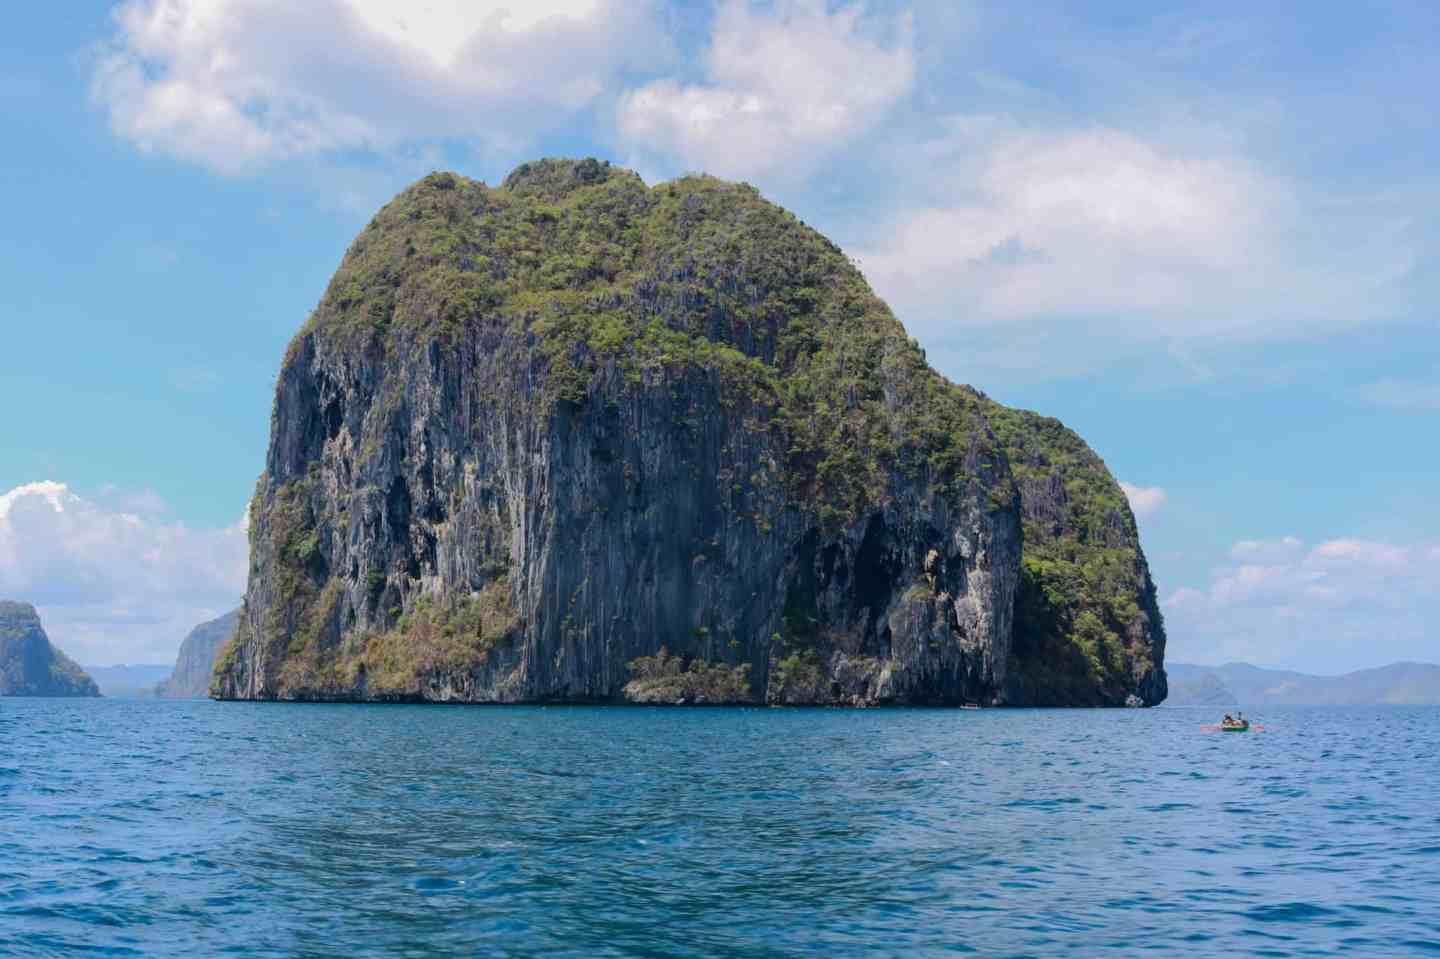 Islands with high cliffs in the middle of the ocean and a tiny canoe next to it in El Nido, Philippines